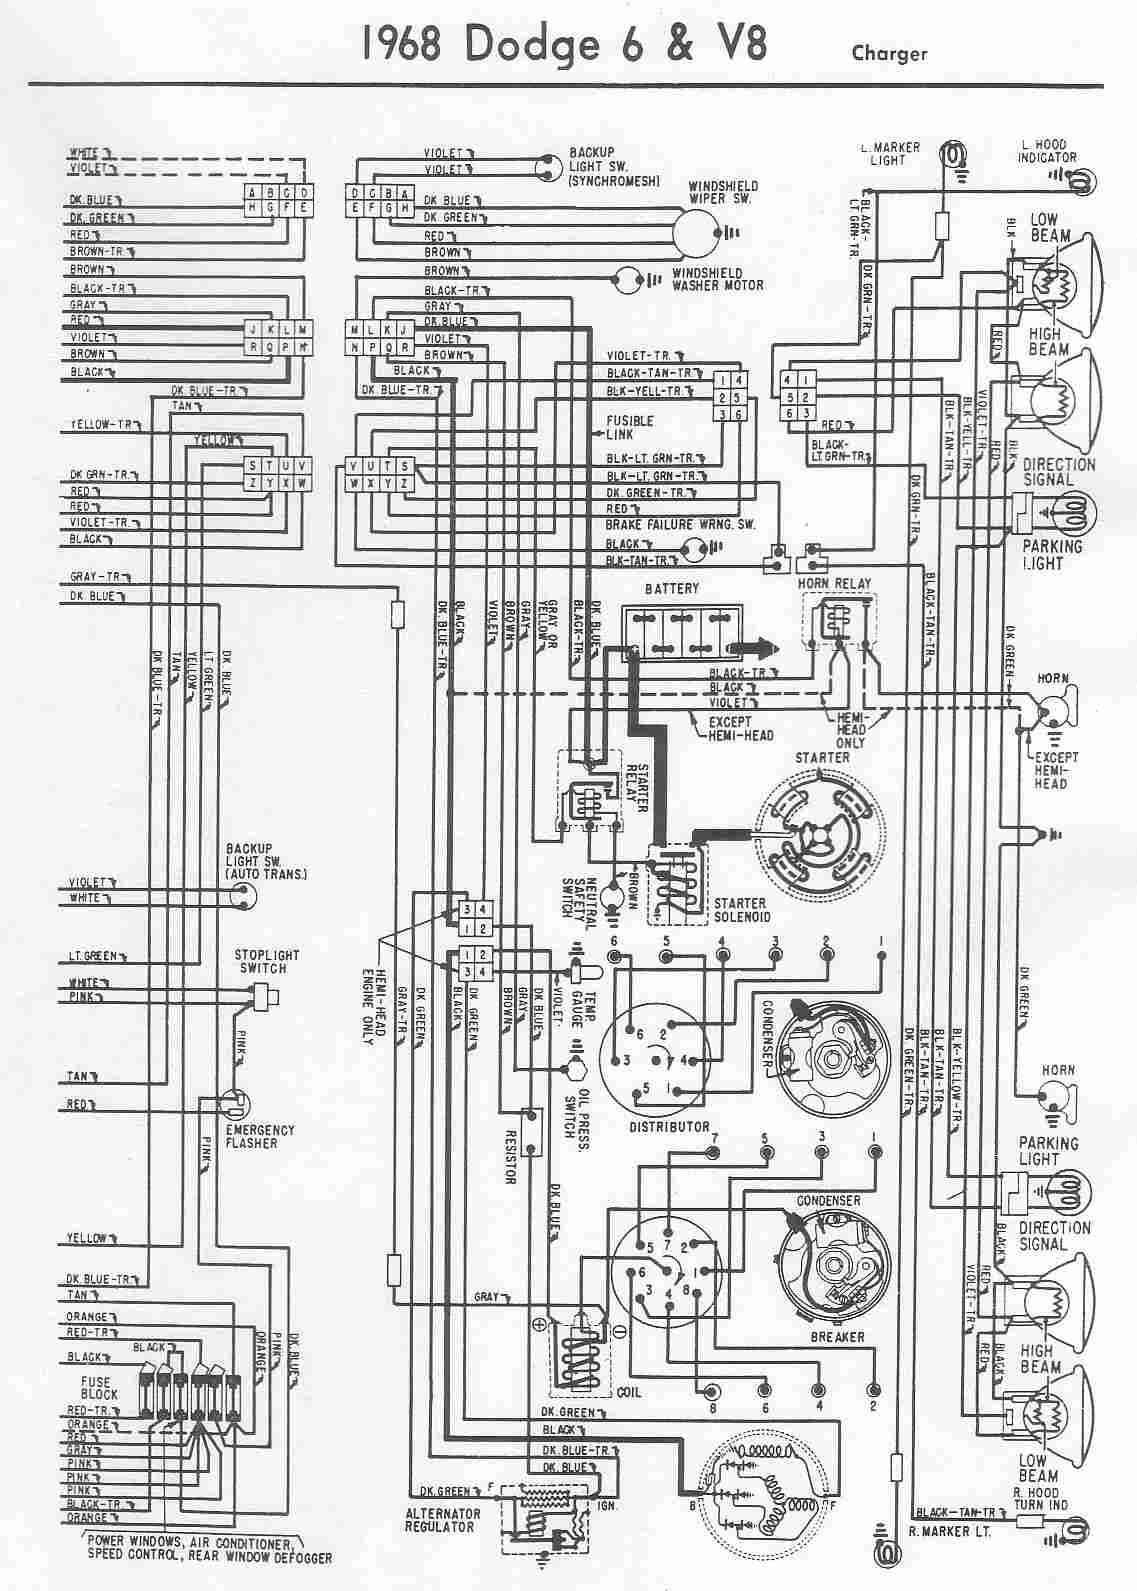 Dodge Car Manuals Wiring Diagrams Pdf Fault Codes 1980 Ford Econoline Diagram Download